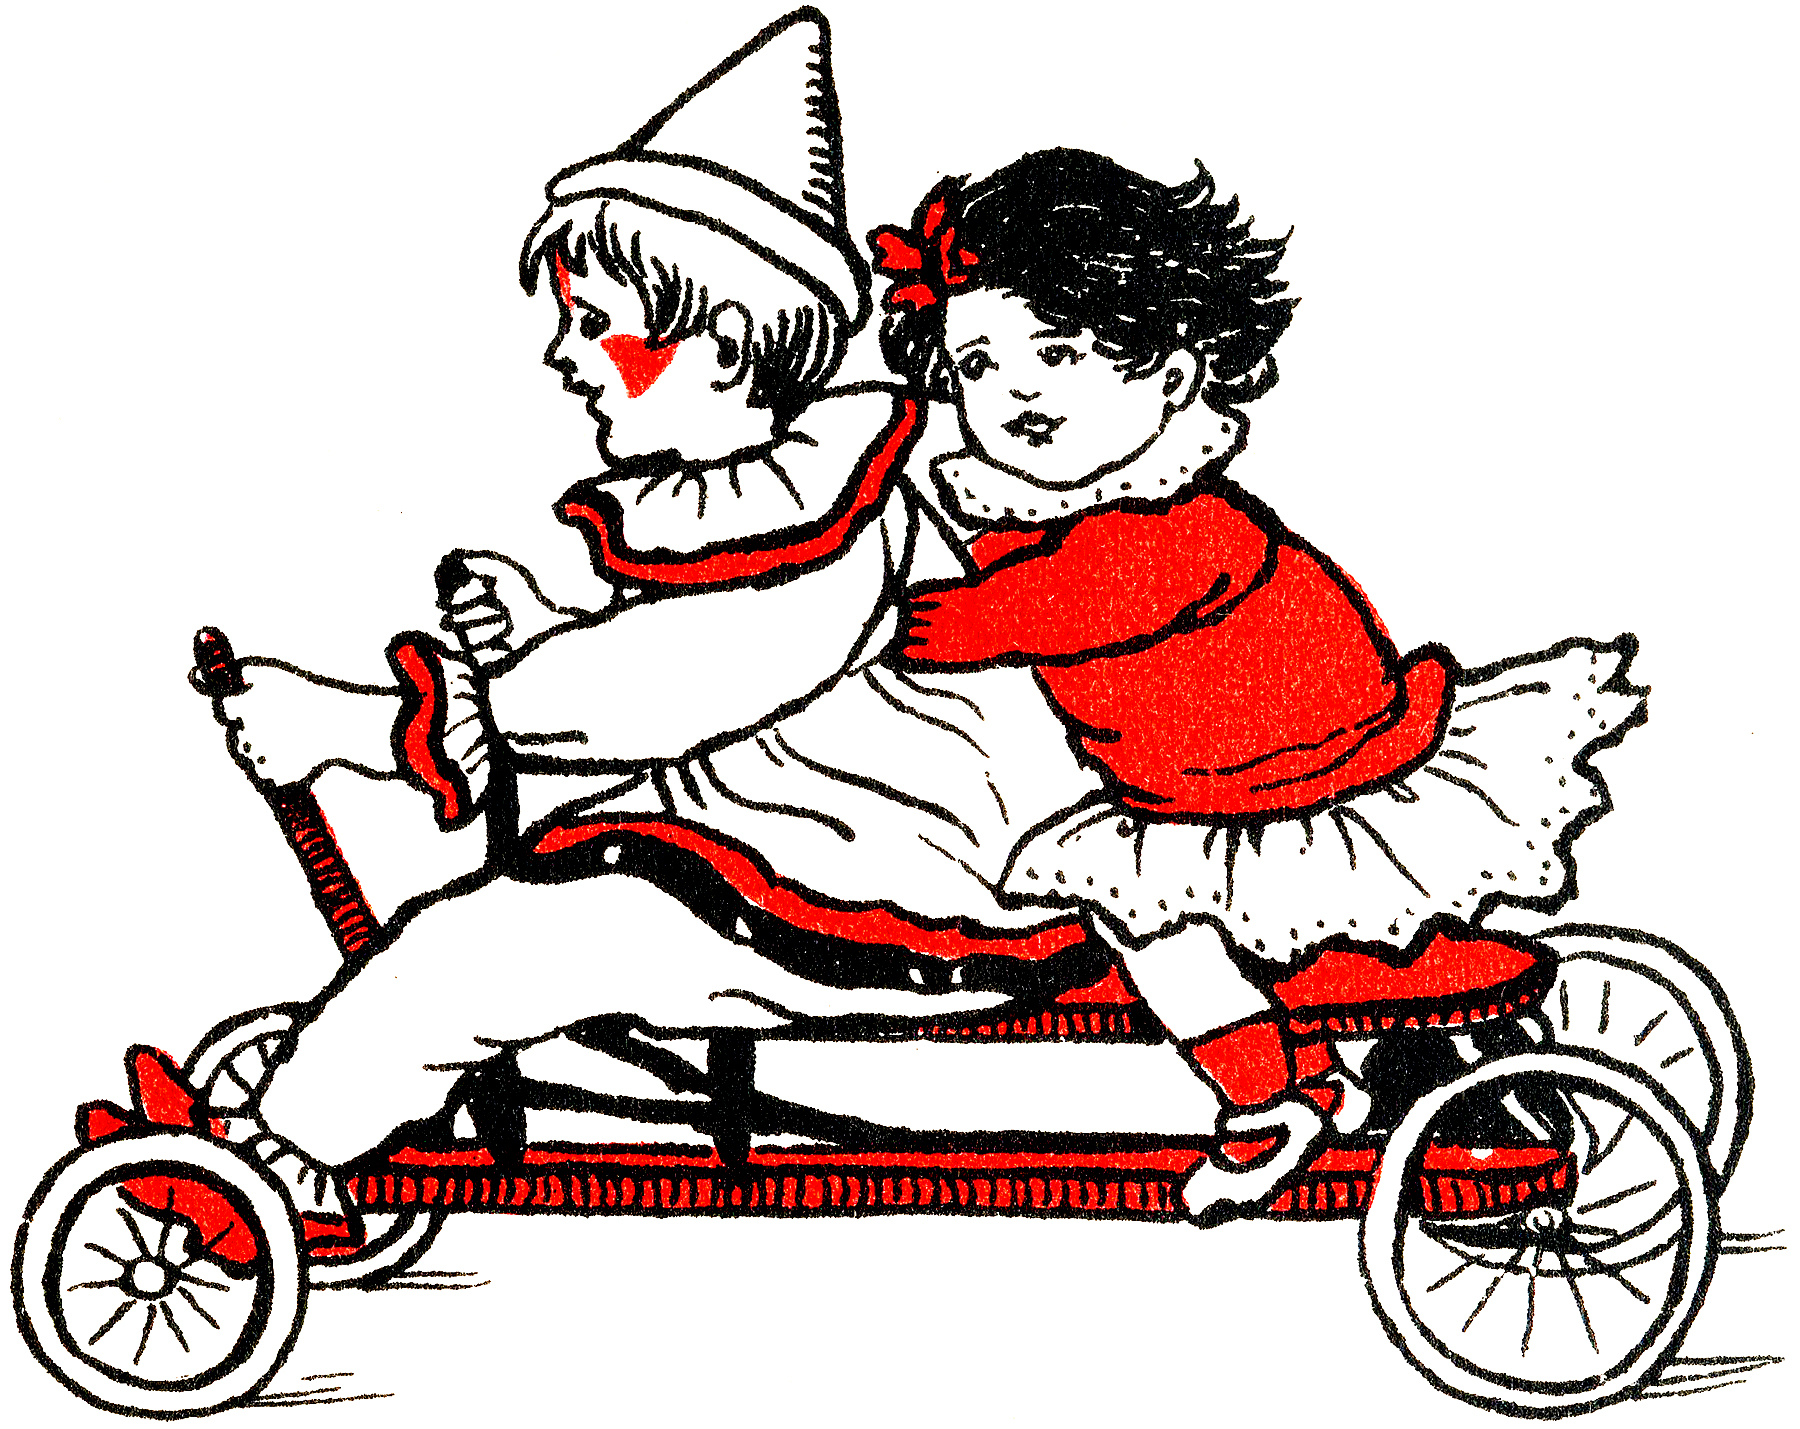 Cute Nostalgic Clown and Girl Riding a Cart Graphic!